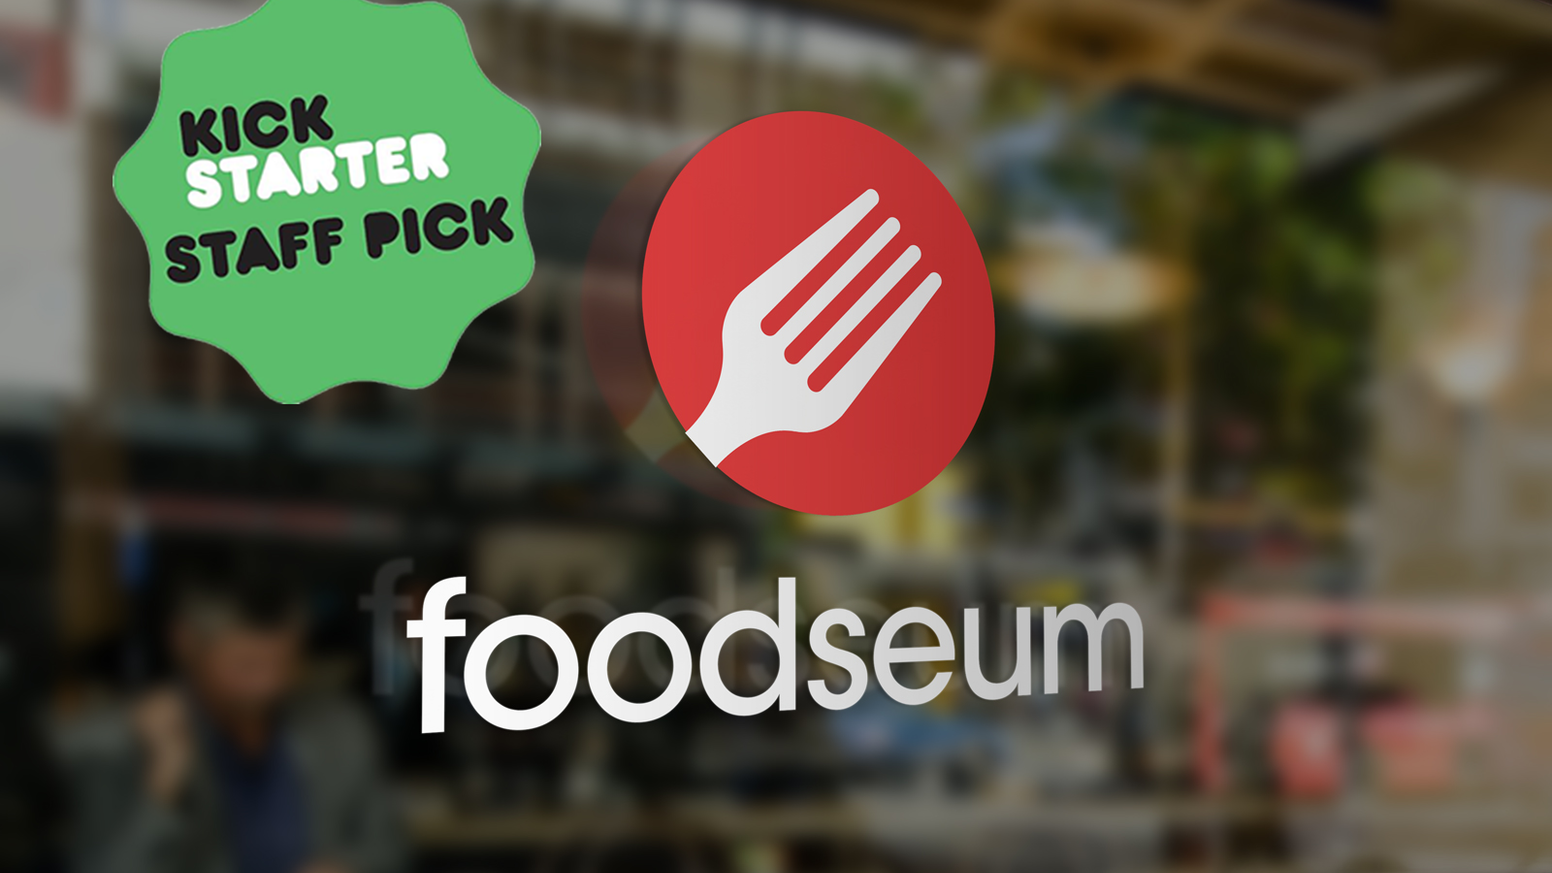 Help us open Foodseum's first interactive exhibit by May 2015.